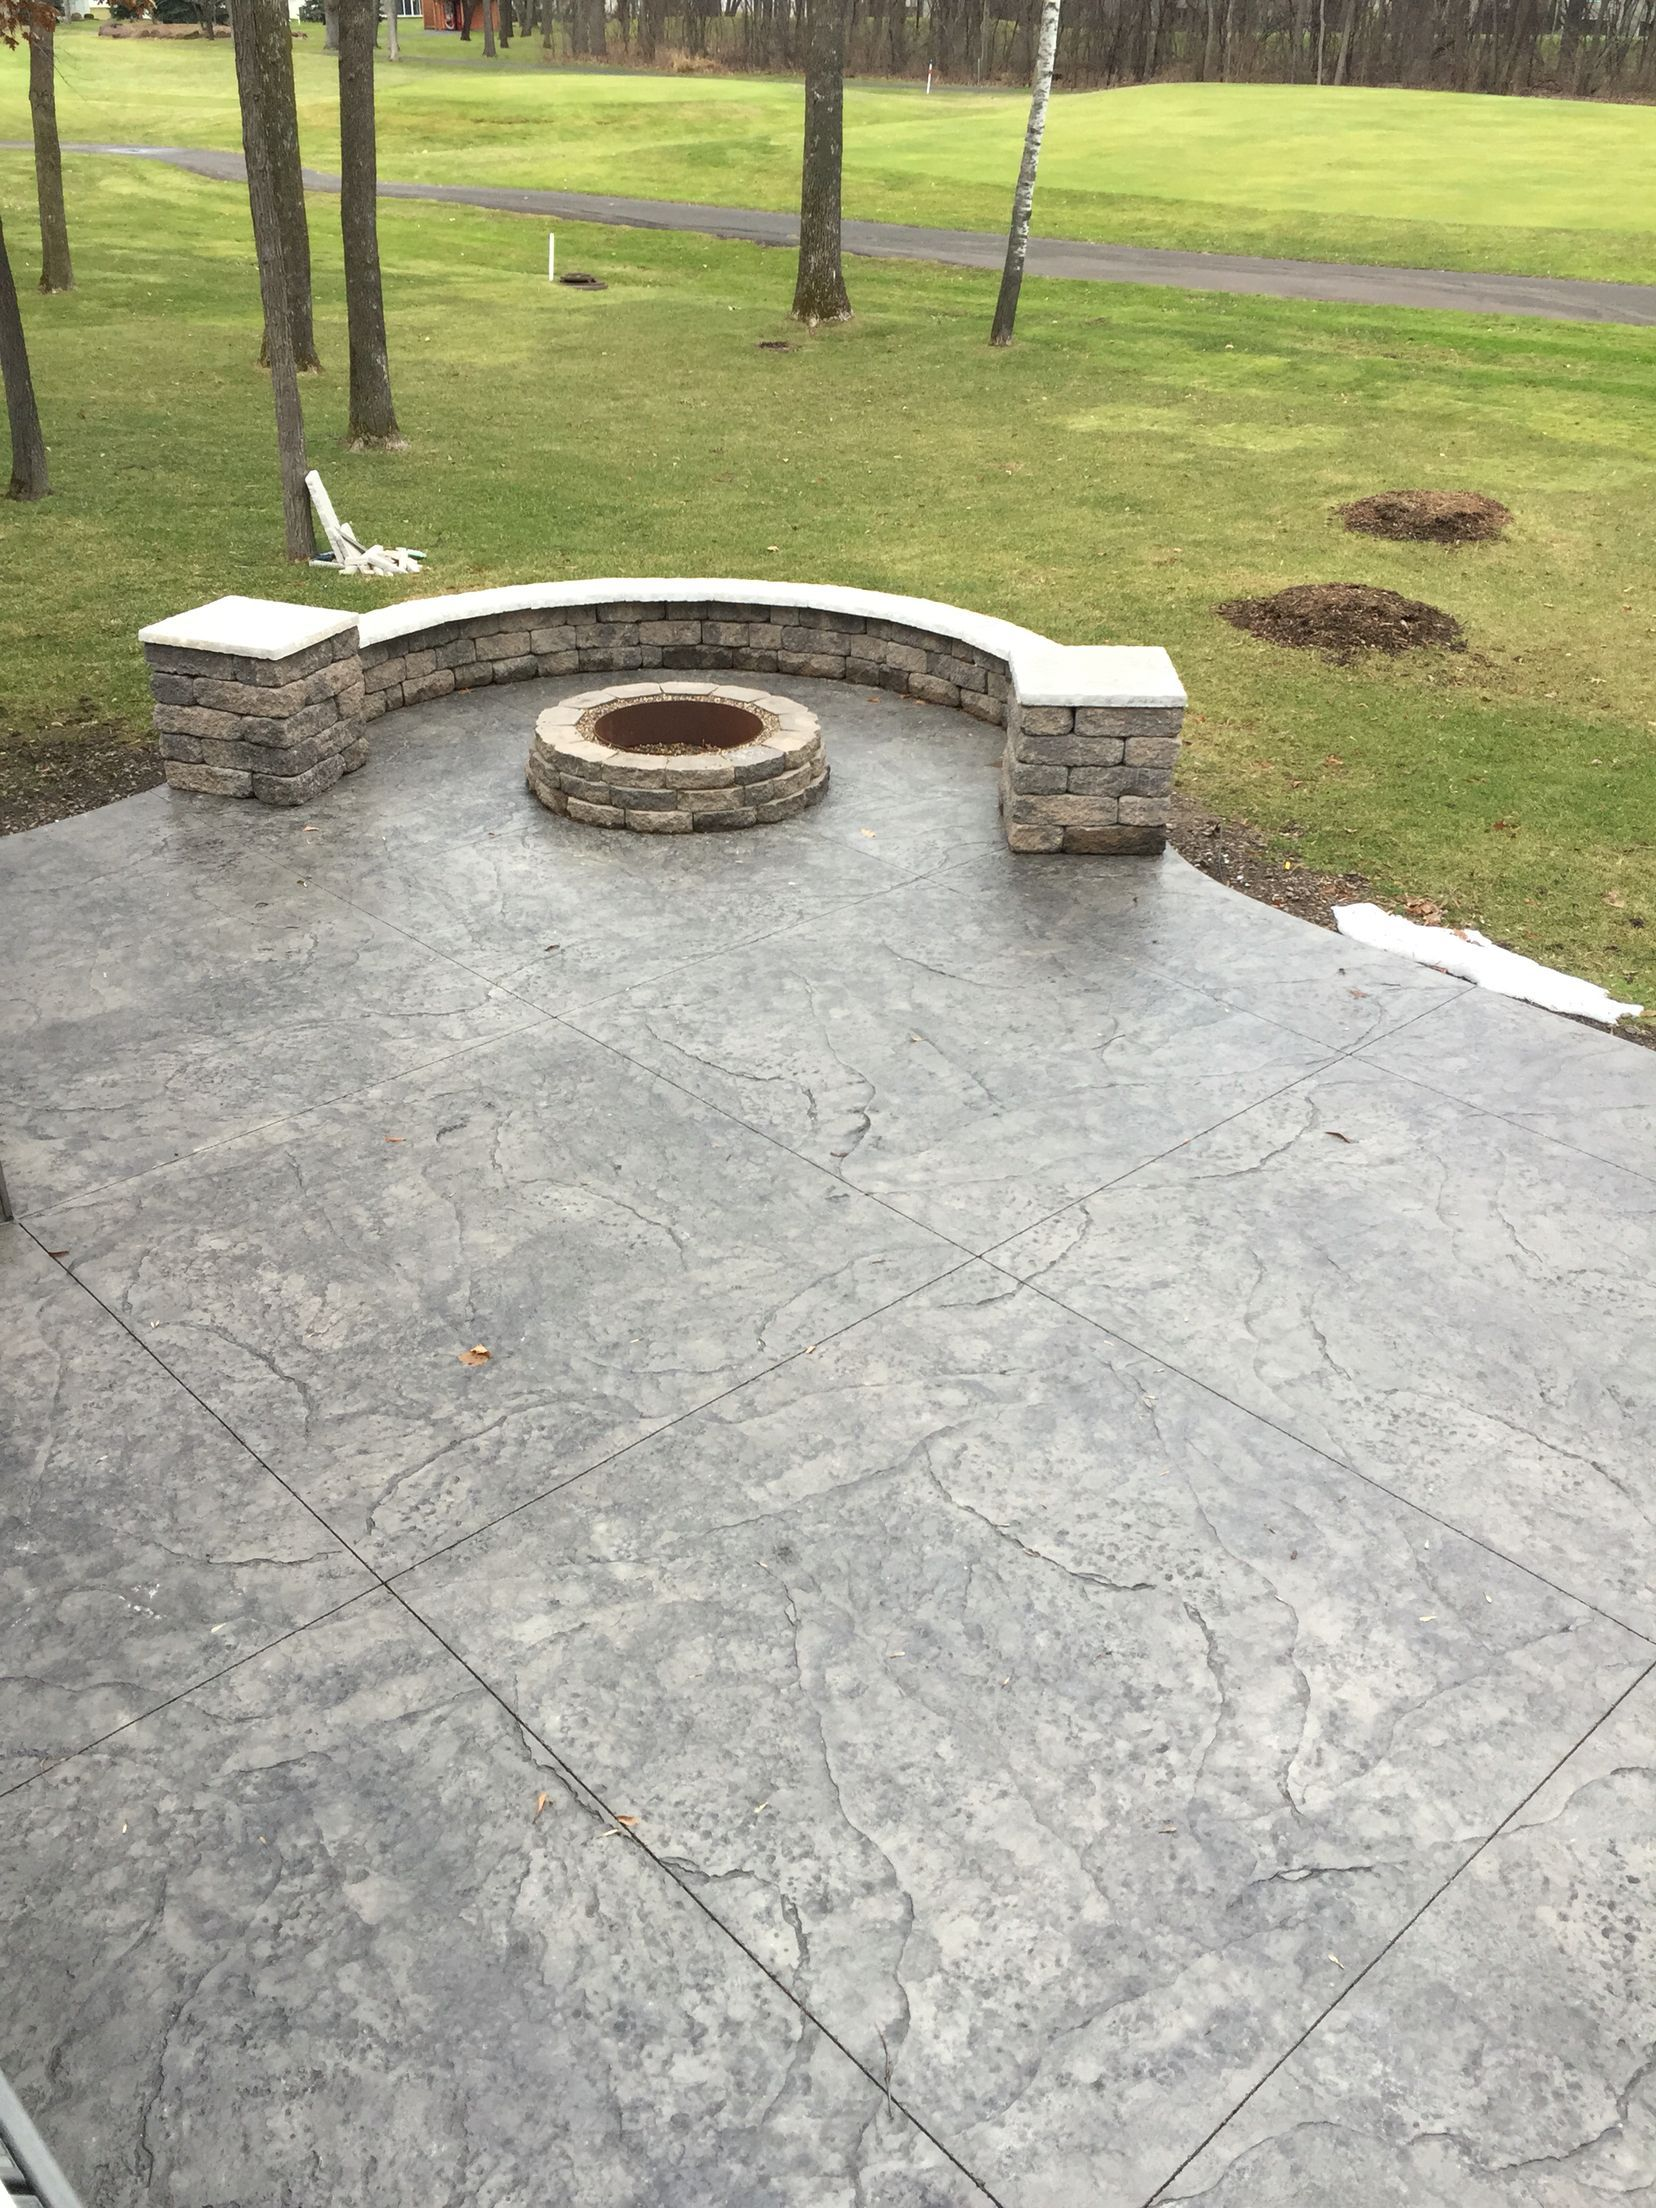 Stamped Concrete Patio With Integrated Seating Wall Pillars And Matching Fire Pit By Sierra Concret In 2020 Concrete Patio Stamped Concrete Patio Fire Pit Landscaping